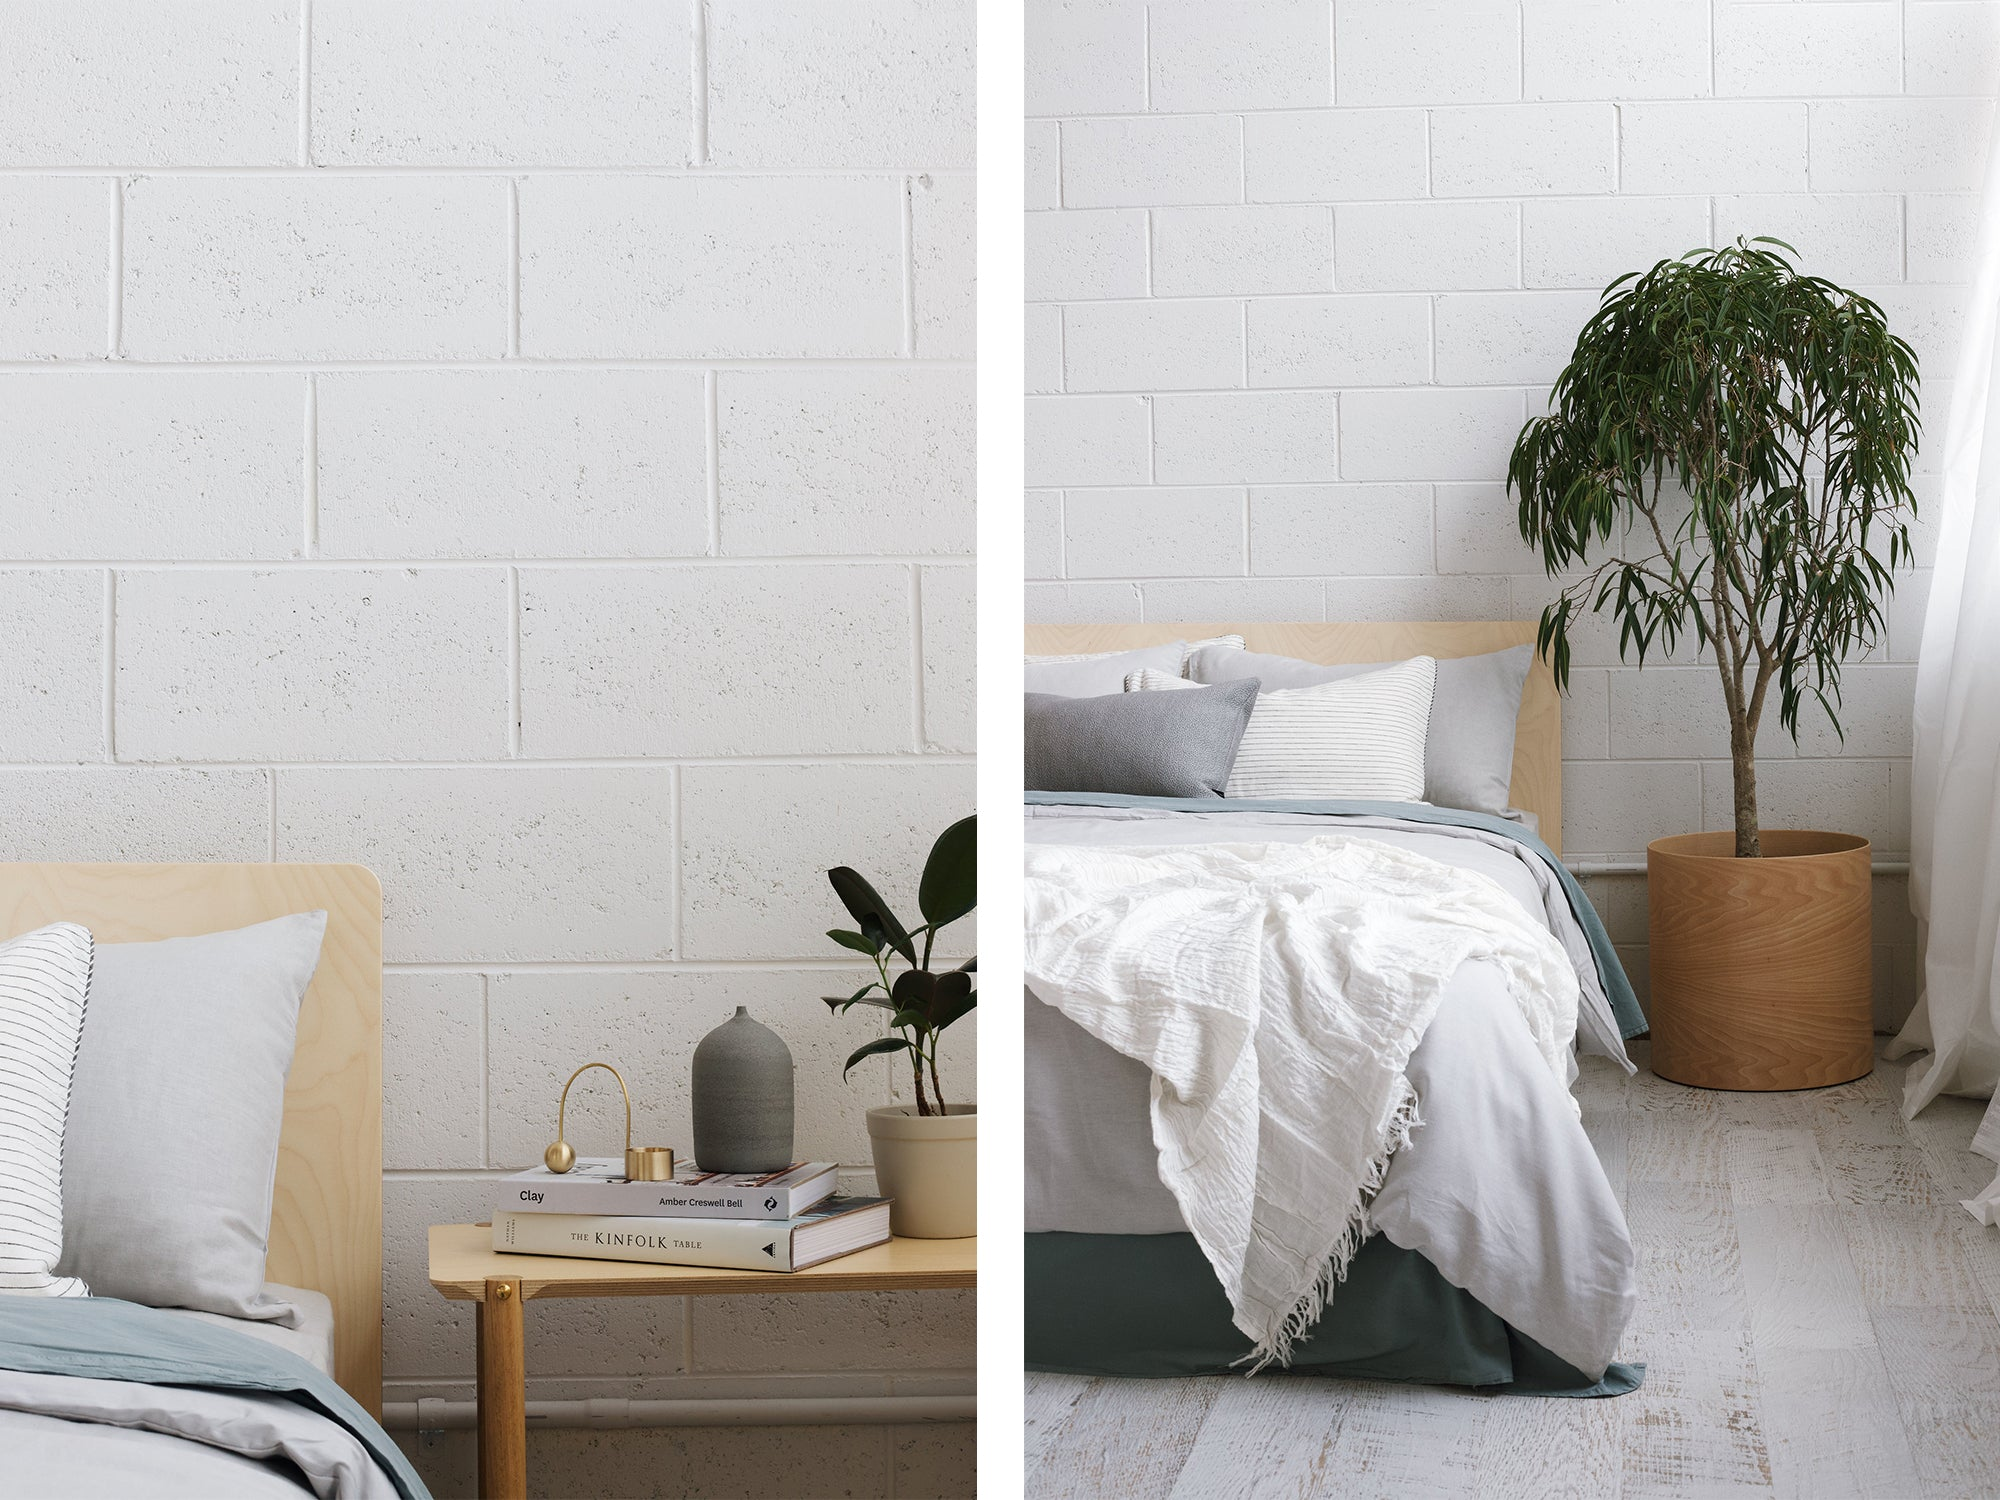 Styling Tips for a Minimalist Bedroom by Windy Phan